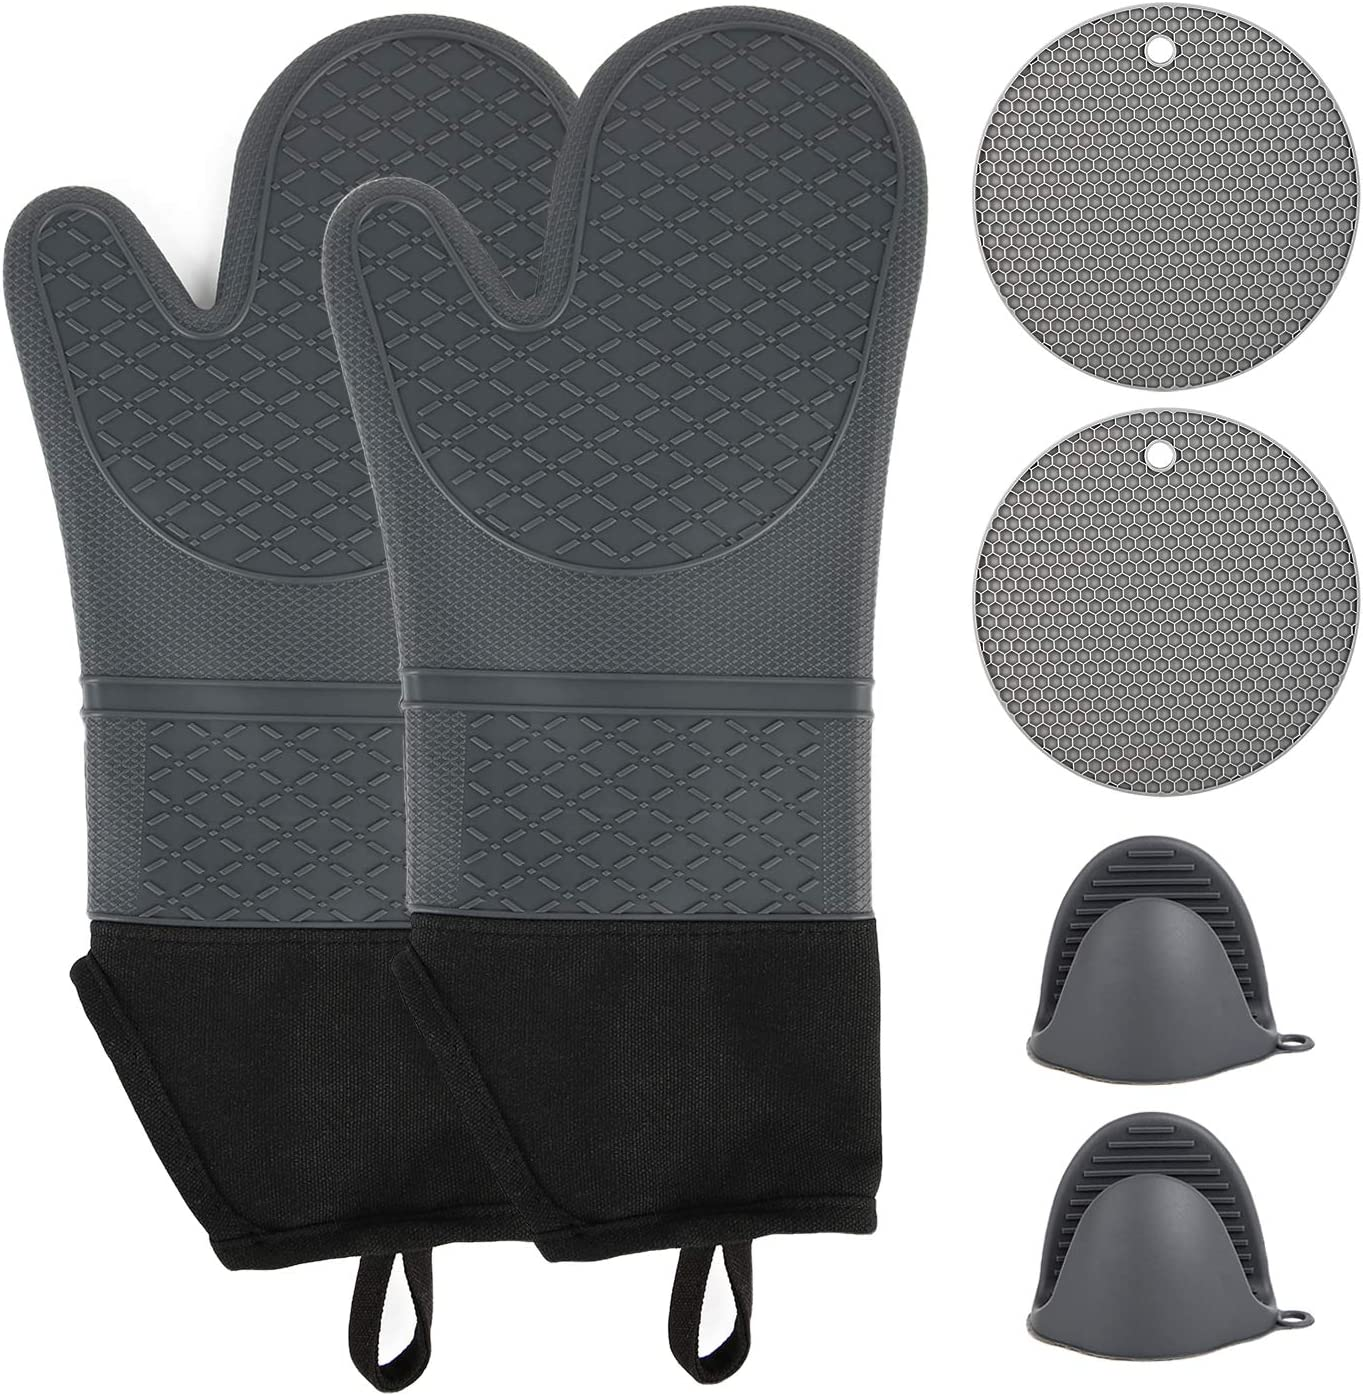 wellvo 6 Pack Extra Long Oven Mitts and Pot Holders Set 500℉ Heat Resistant Food Grade Silicone Non-Slip Gloves Potholders Pads for Cooking Baking BBQ(Grey)